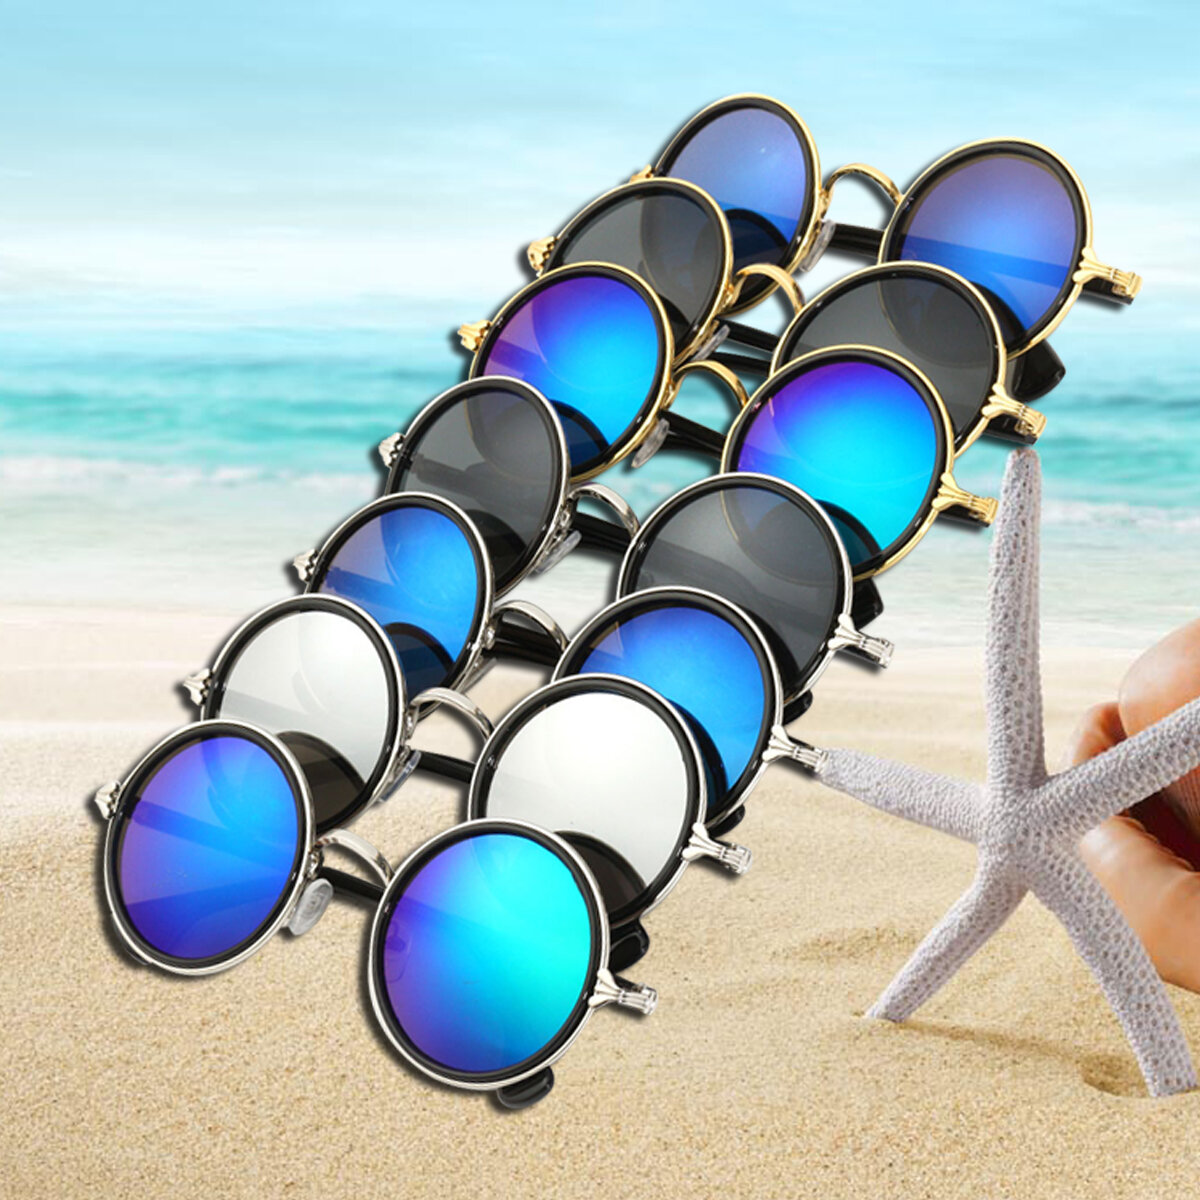 3ea27c4f5 Men Women Vintage Classic Glasses Round Frame Colorful Mirror Lens  Sunglasses Cool - NewChic